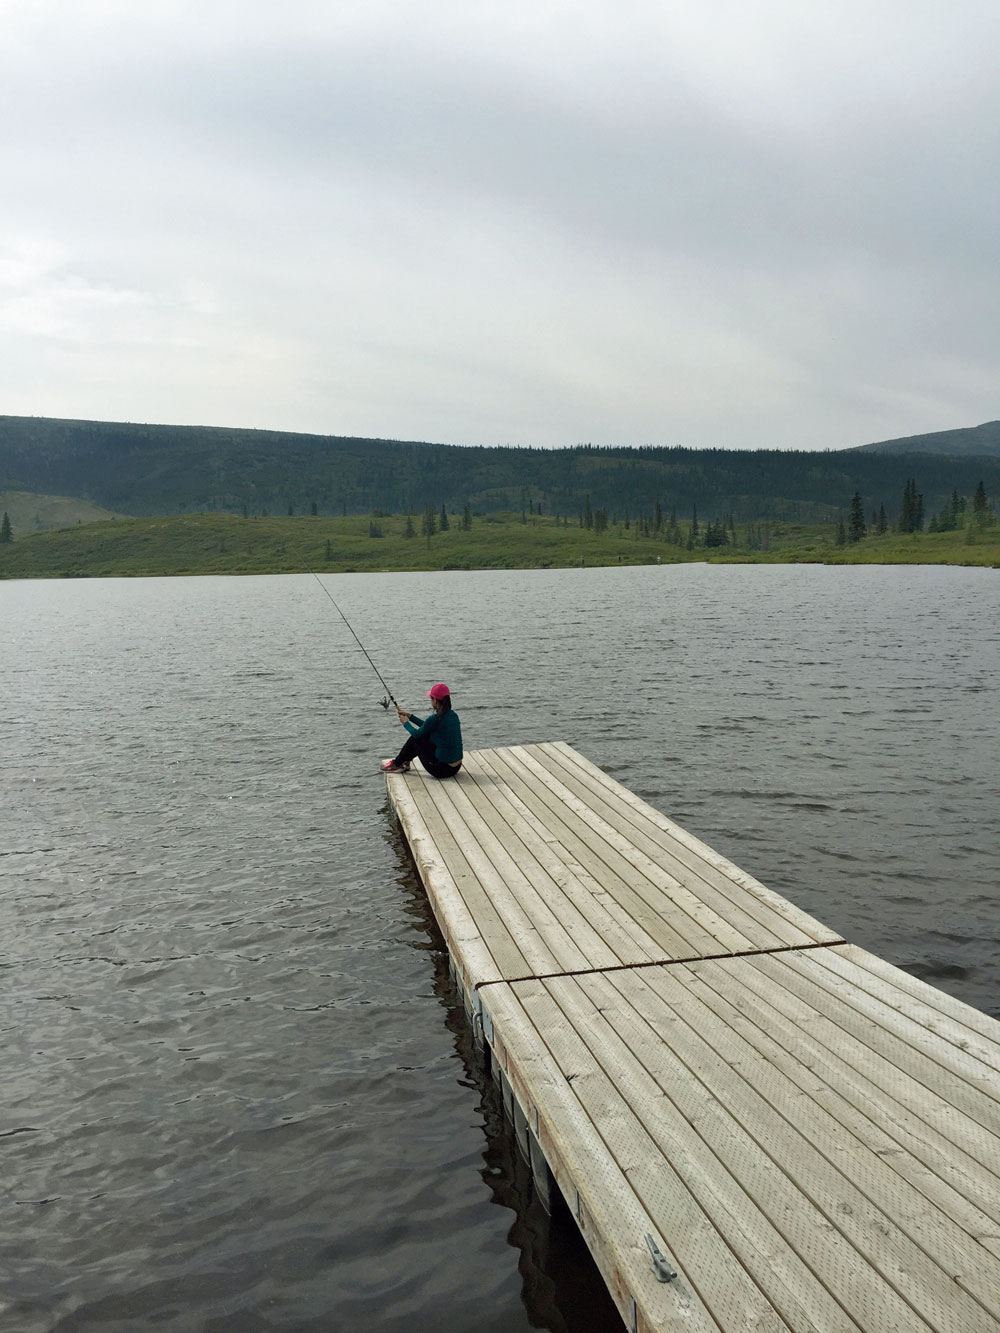 Fishing in the picturesque Wonder Lake